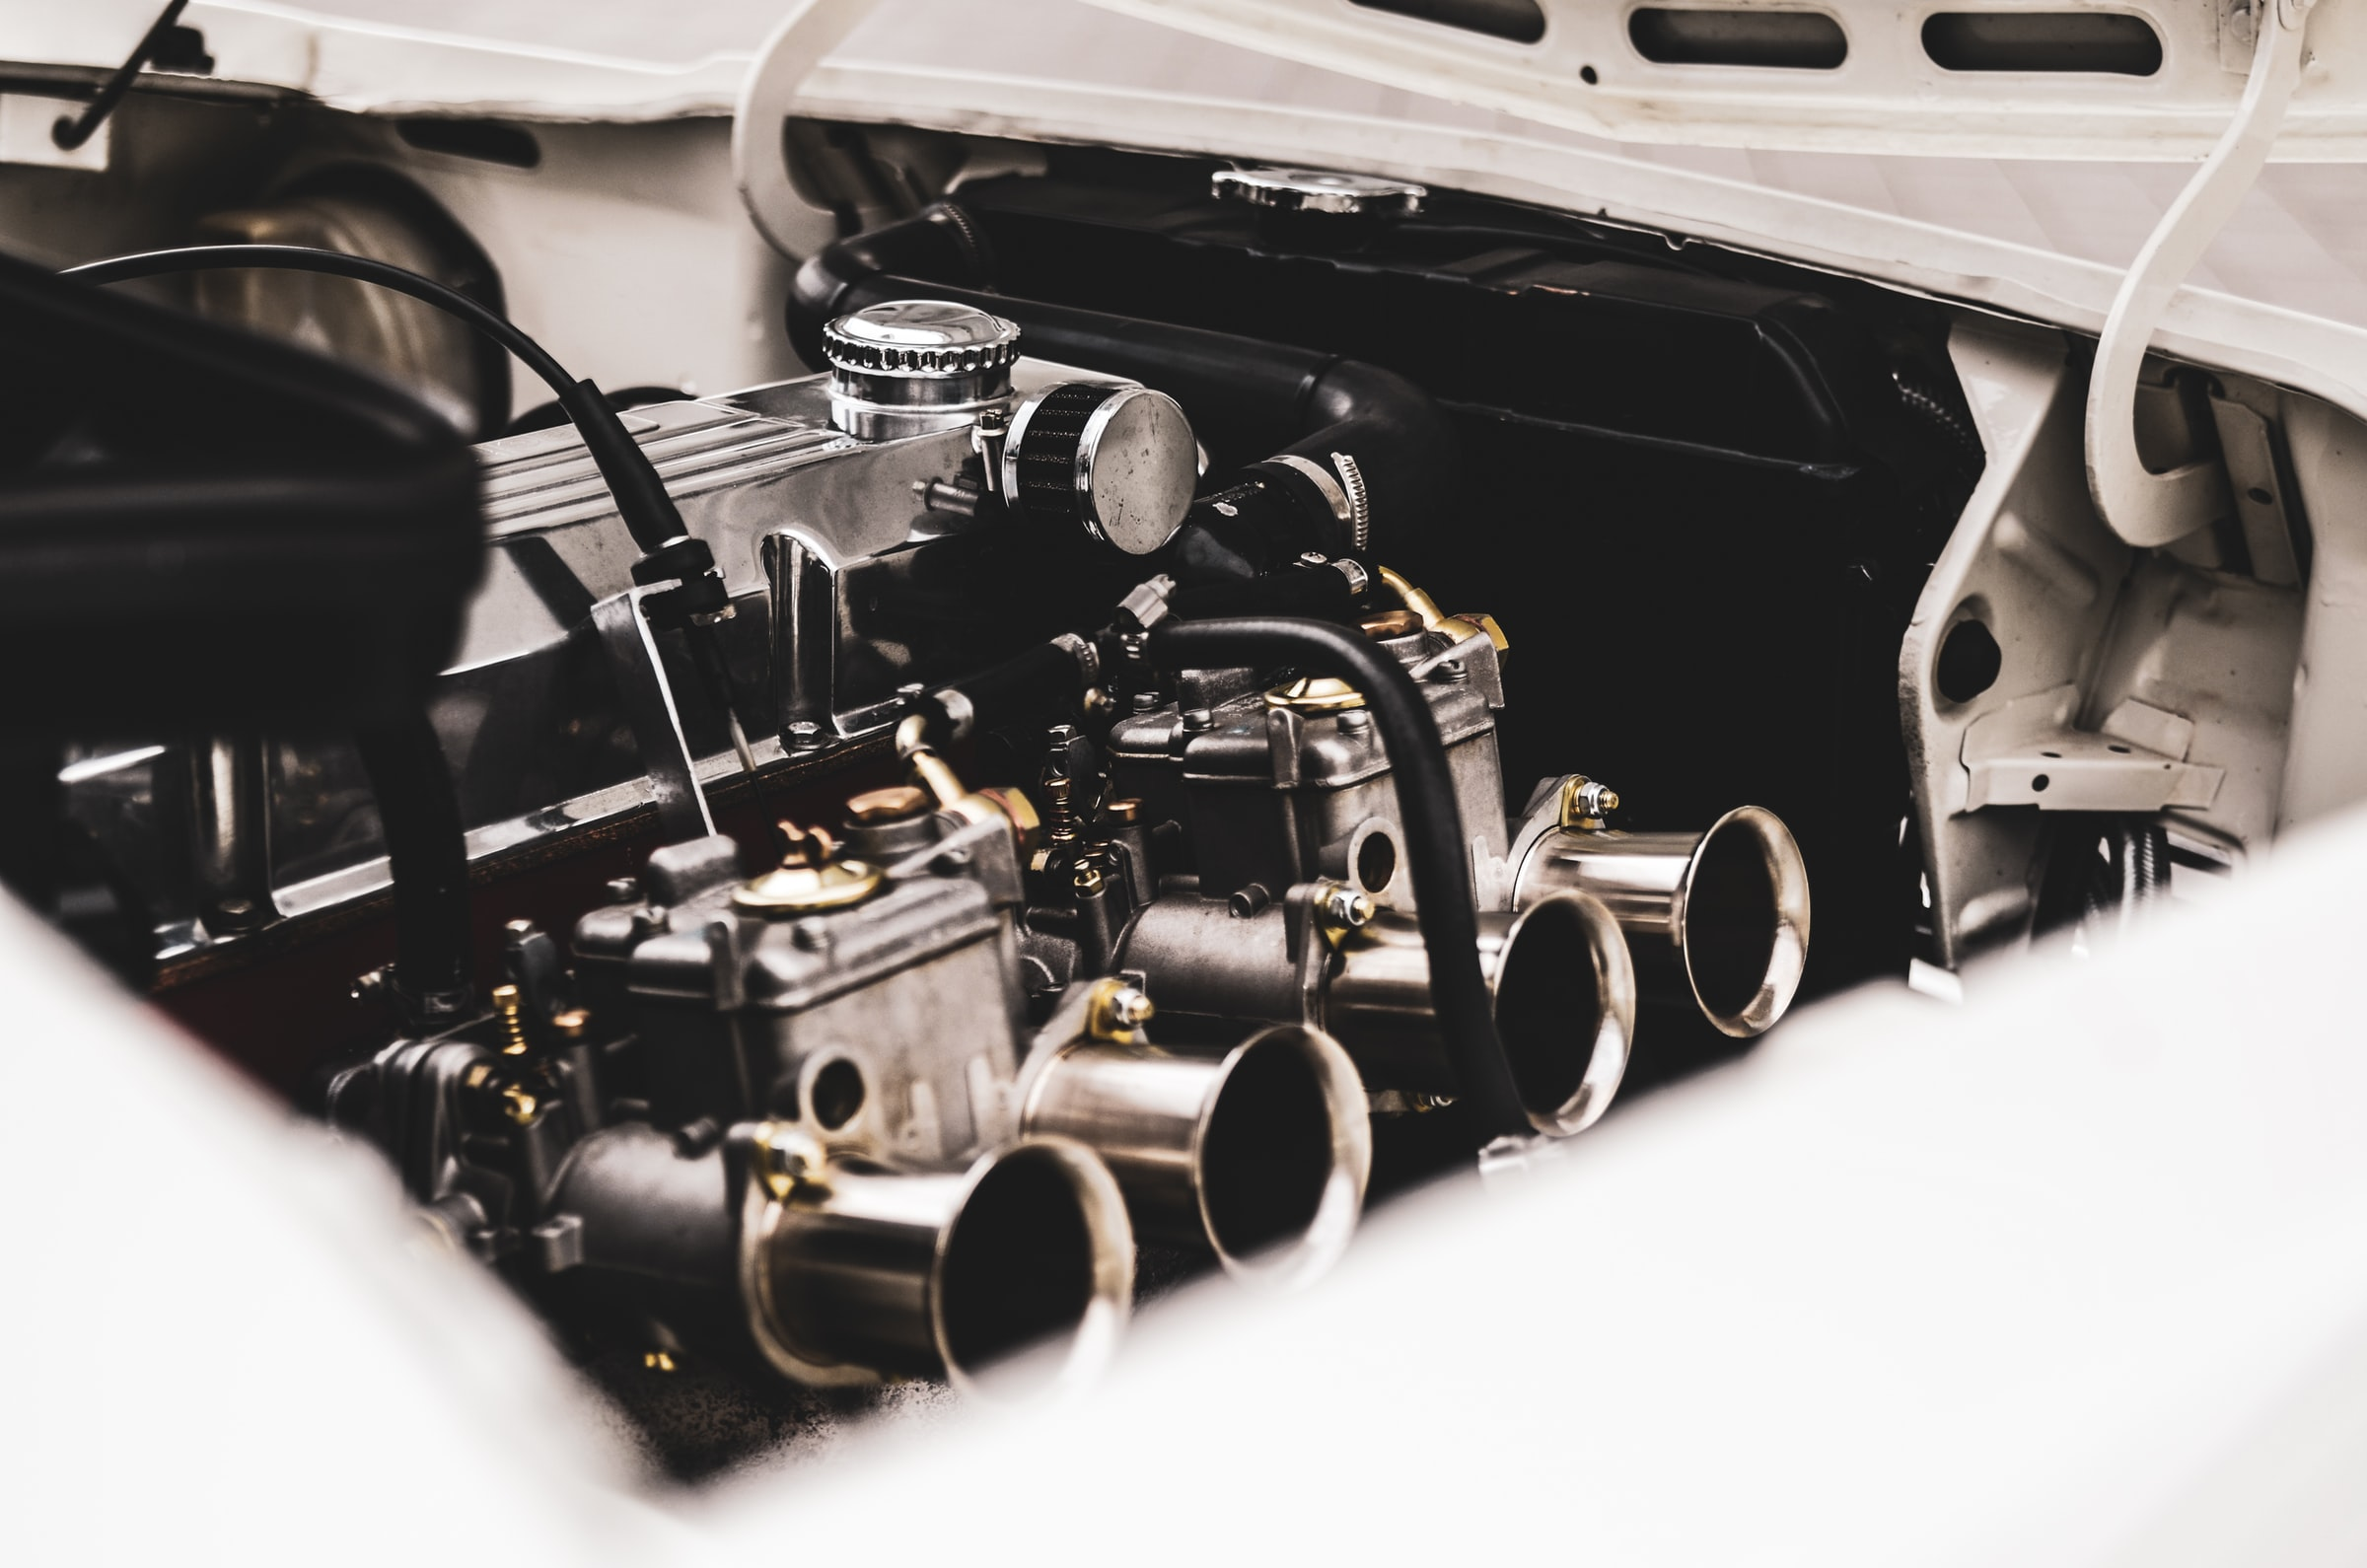 This is a decorative image of an Automotive vehicle. With our unique equipment, our team have the ability to clean automotive parts to a medical grade of cleanliness.